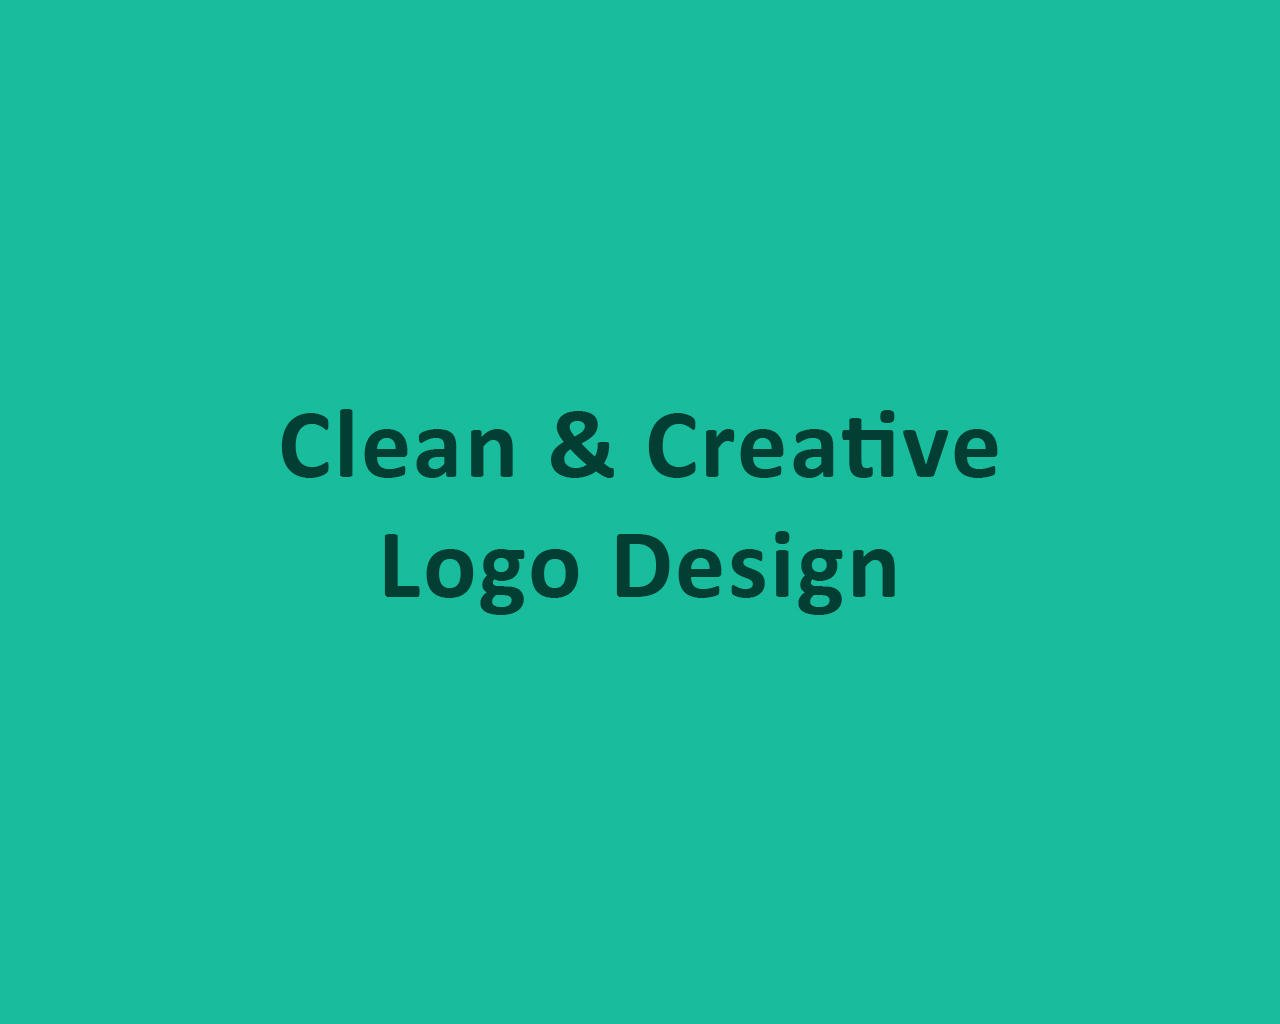 Clean & Creative Logo Design by odiusfly - 105964